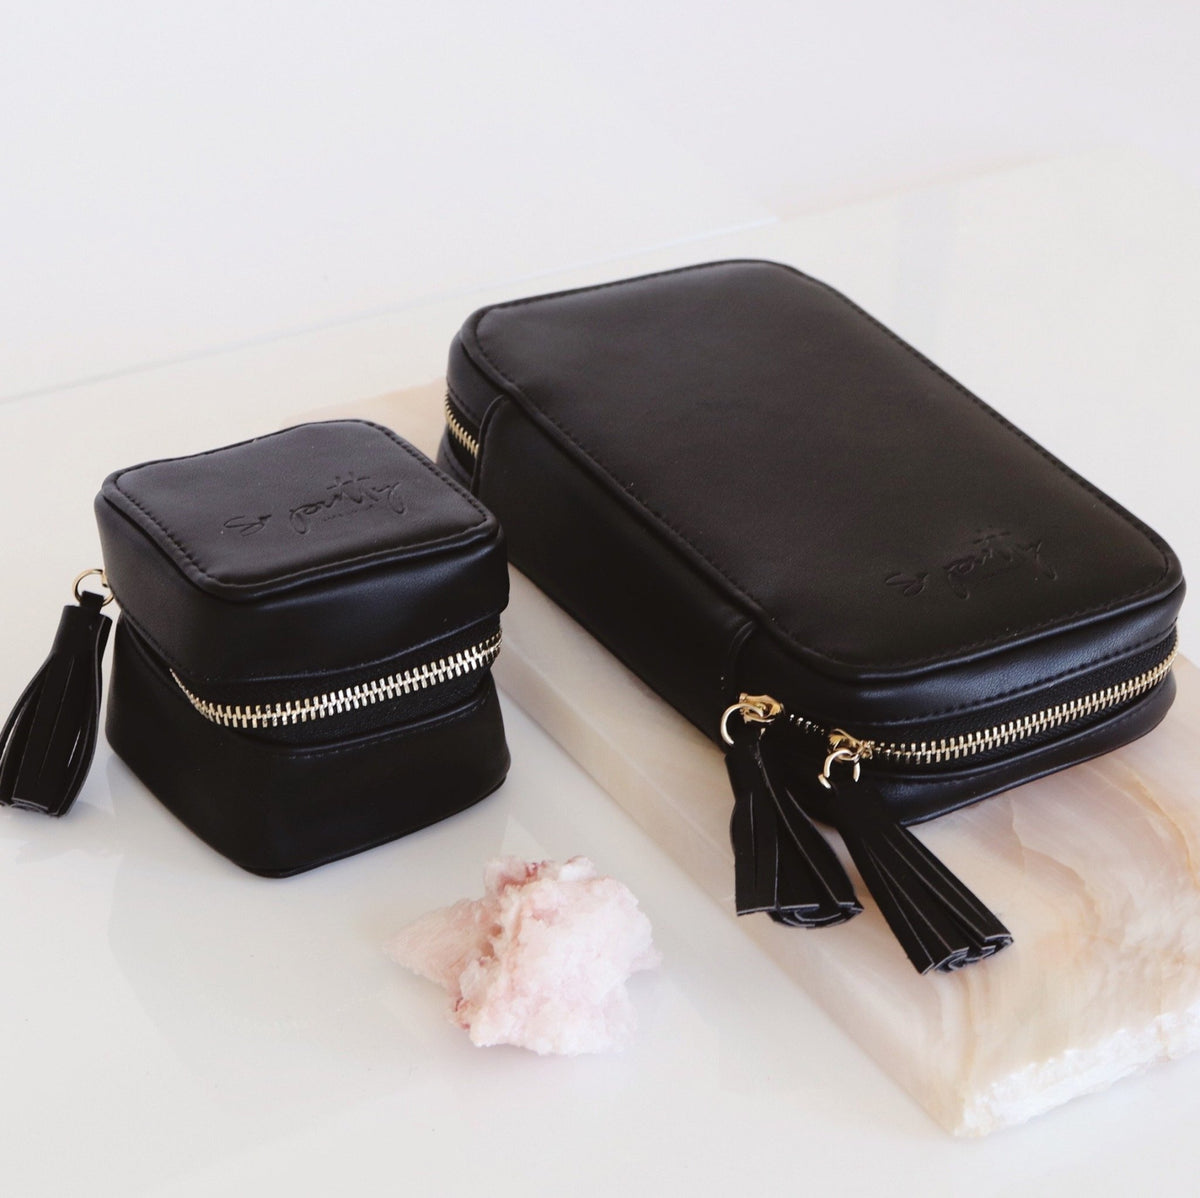 Wanderlust Daily Jewelry Bag - Black - SO PRETTY CARA COTTER